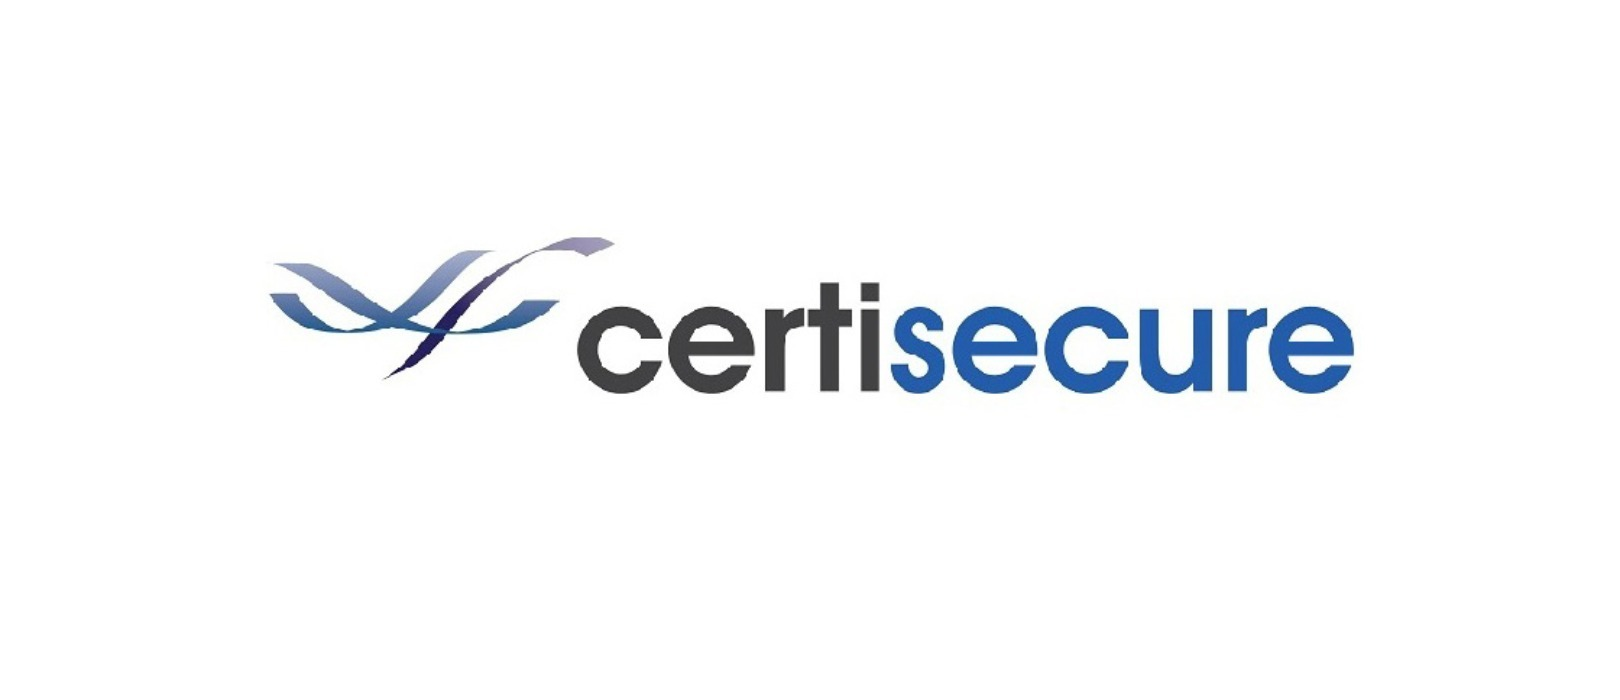 Doorpac achieves Certisecure Certification main image